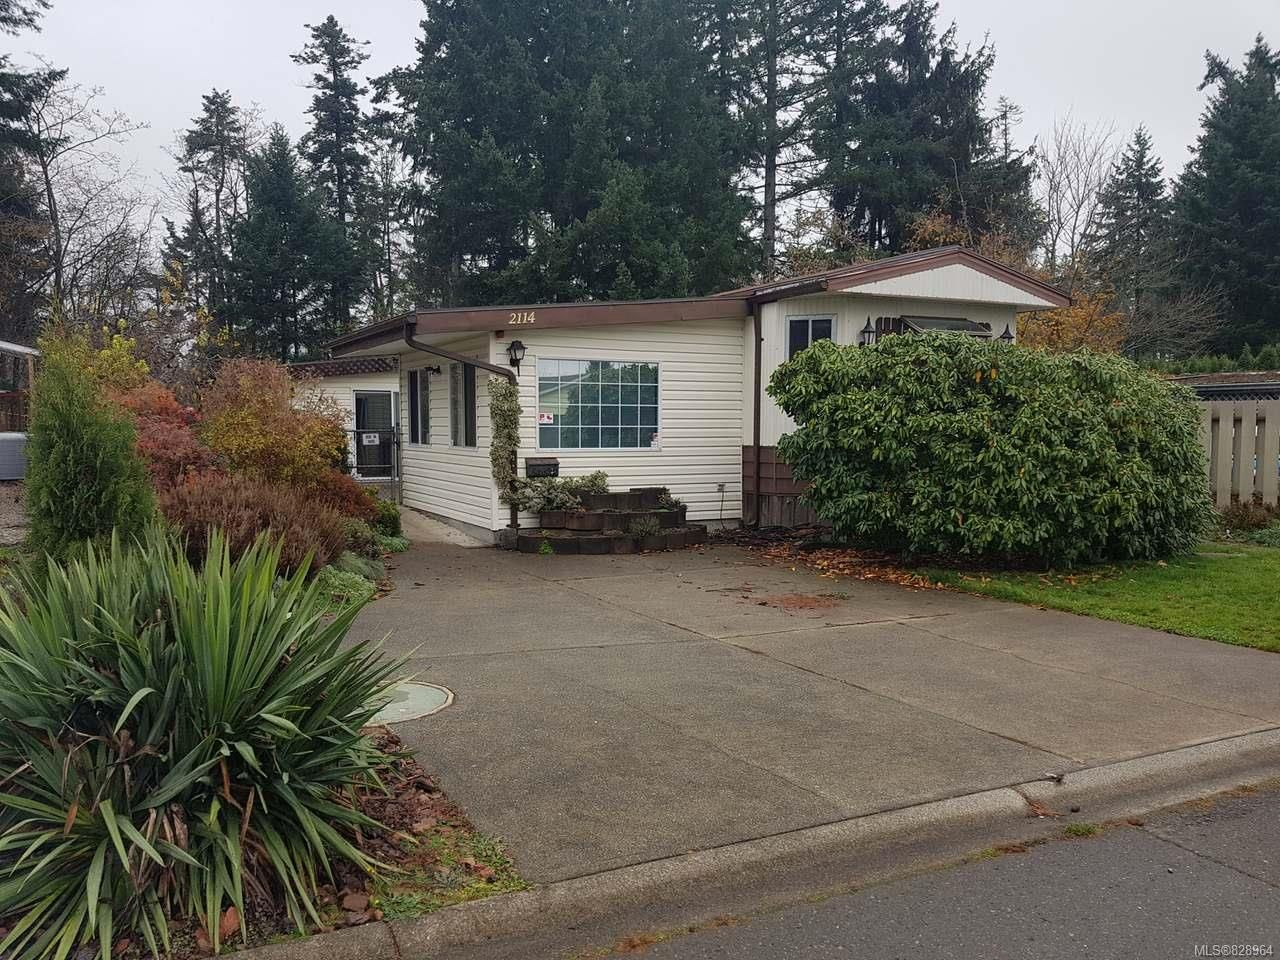 Main Photo: 2114 Stadacona Dr in COMOX: CV Comox (Town of) Manufactured Home for sale (Comox Valley)  : MLS®# 828964